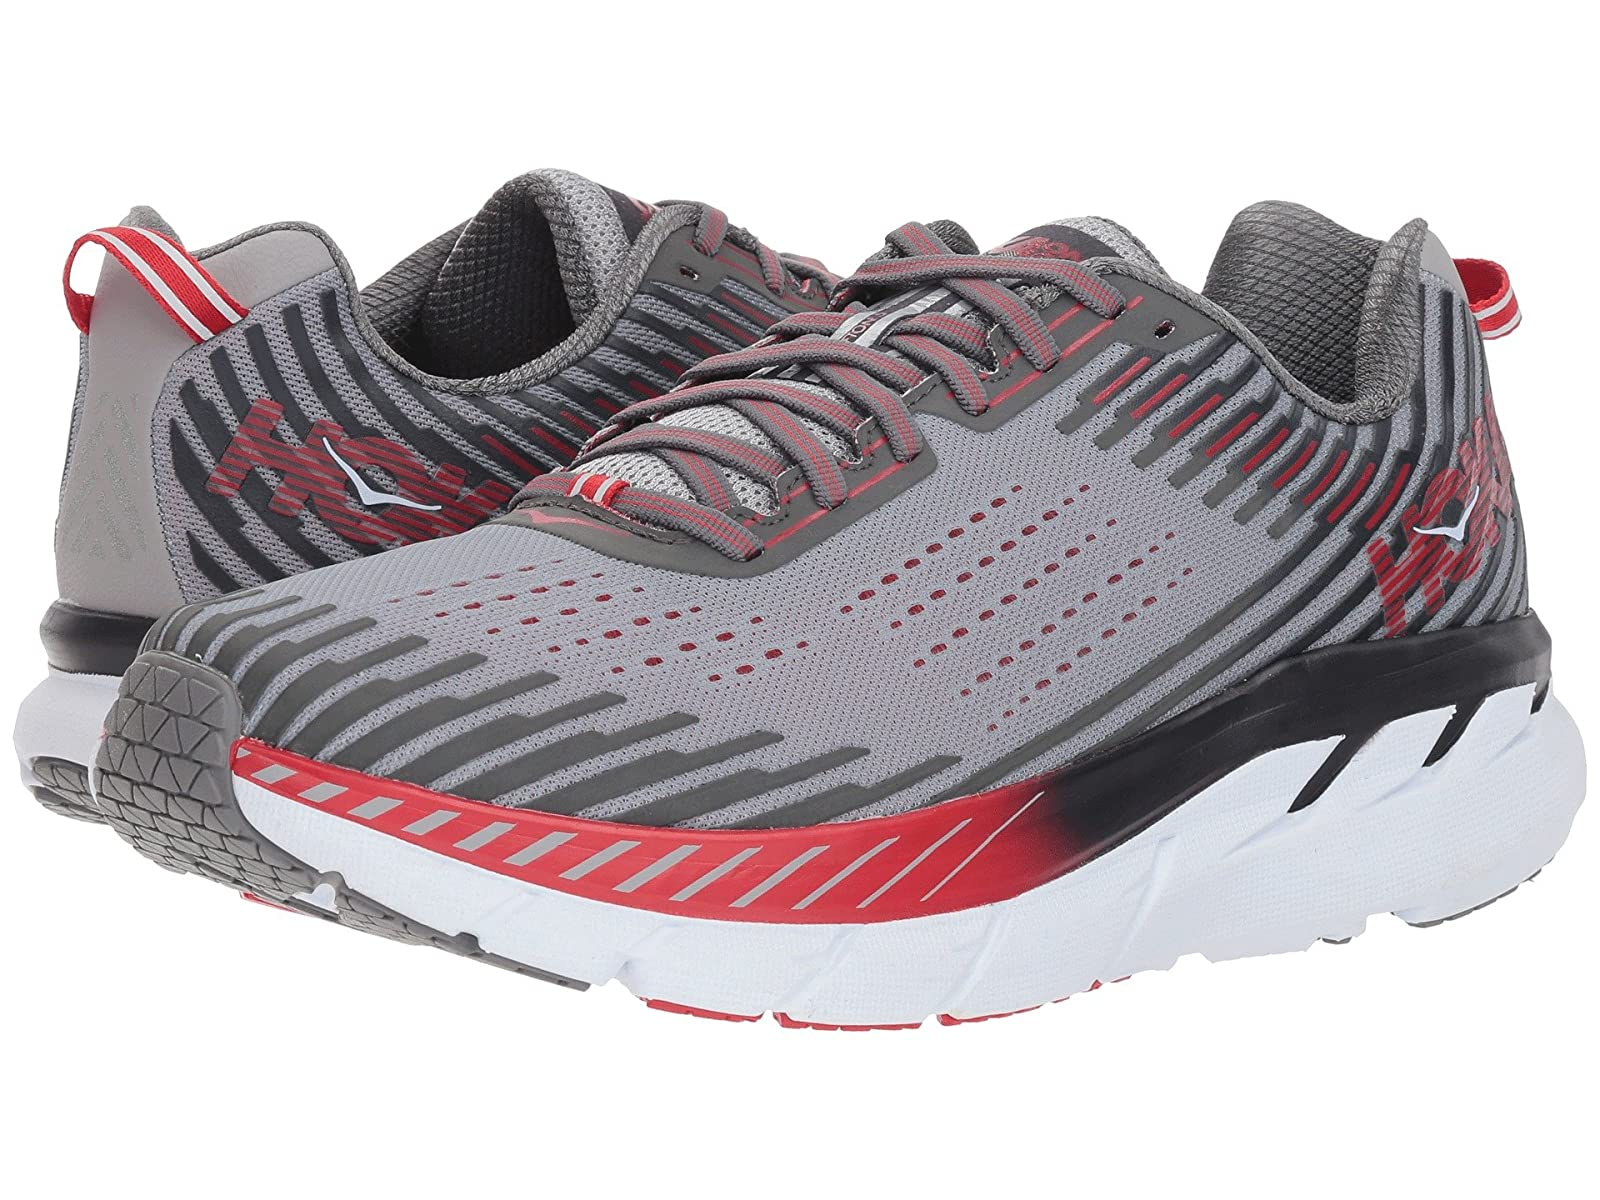 Hoka One One Clifton 5Atmospheric grades have affordable shoes